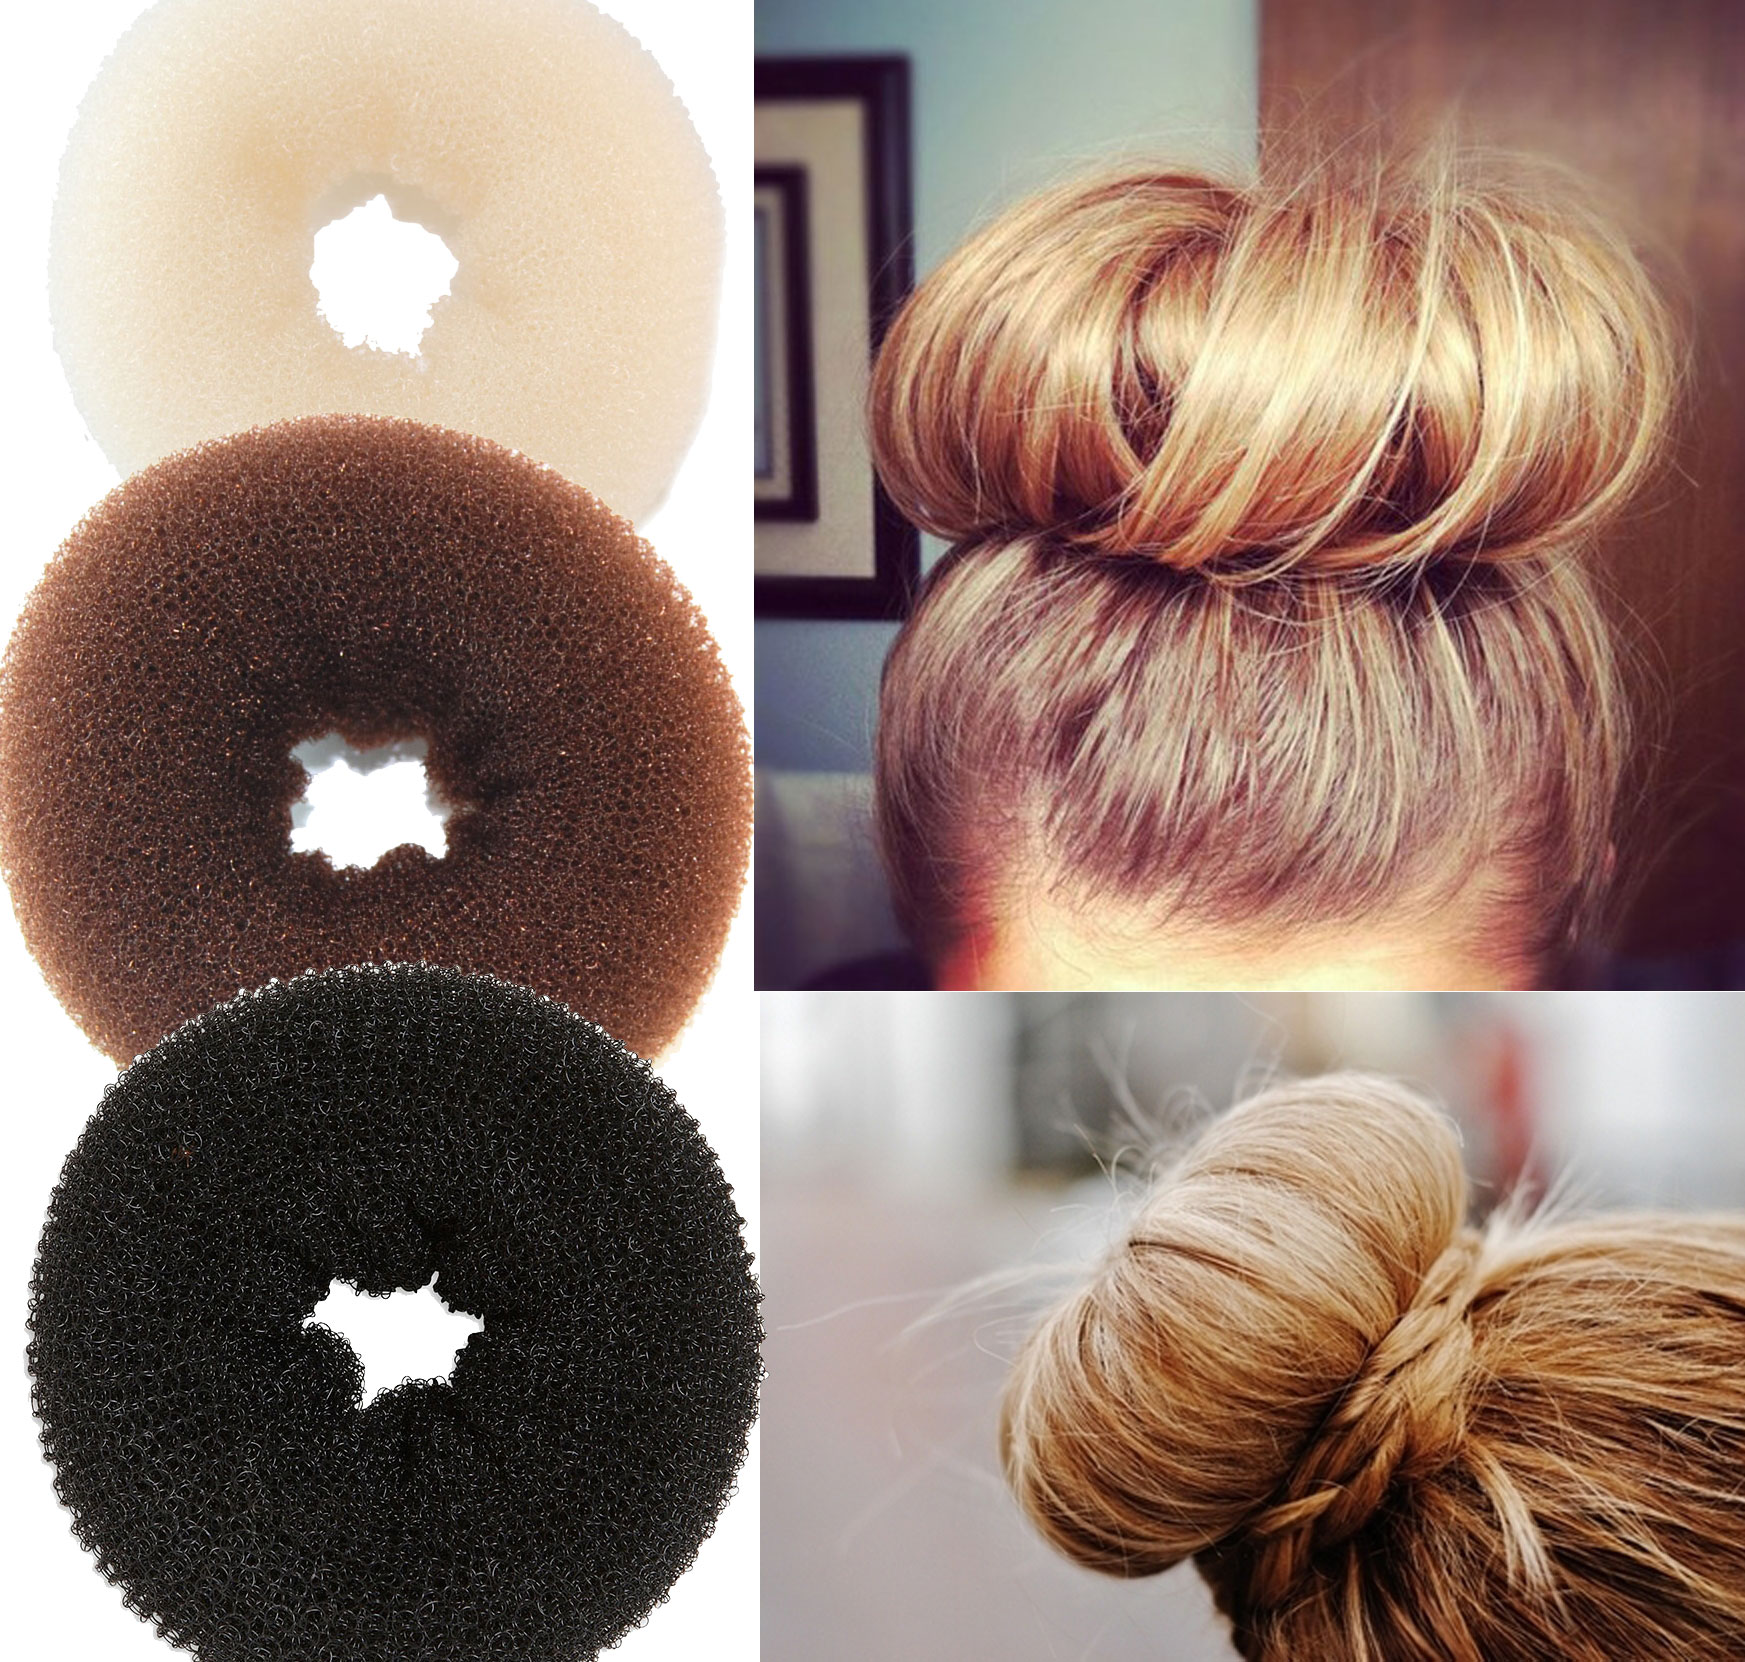 This accessory makes creating the perfect bun a snap!